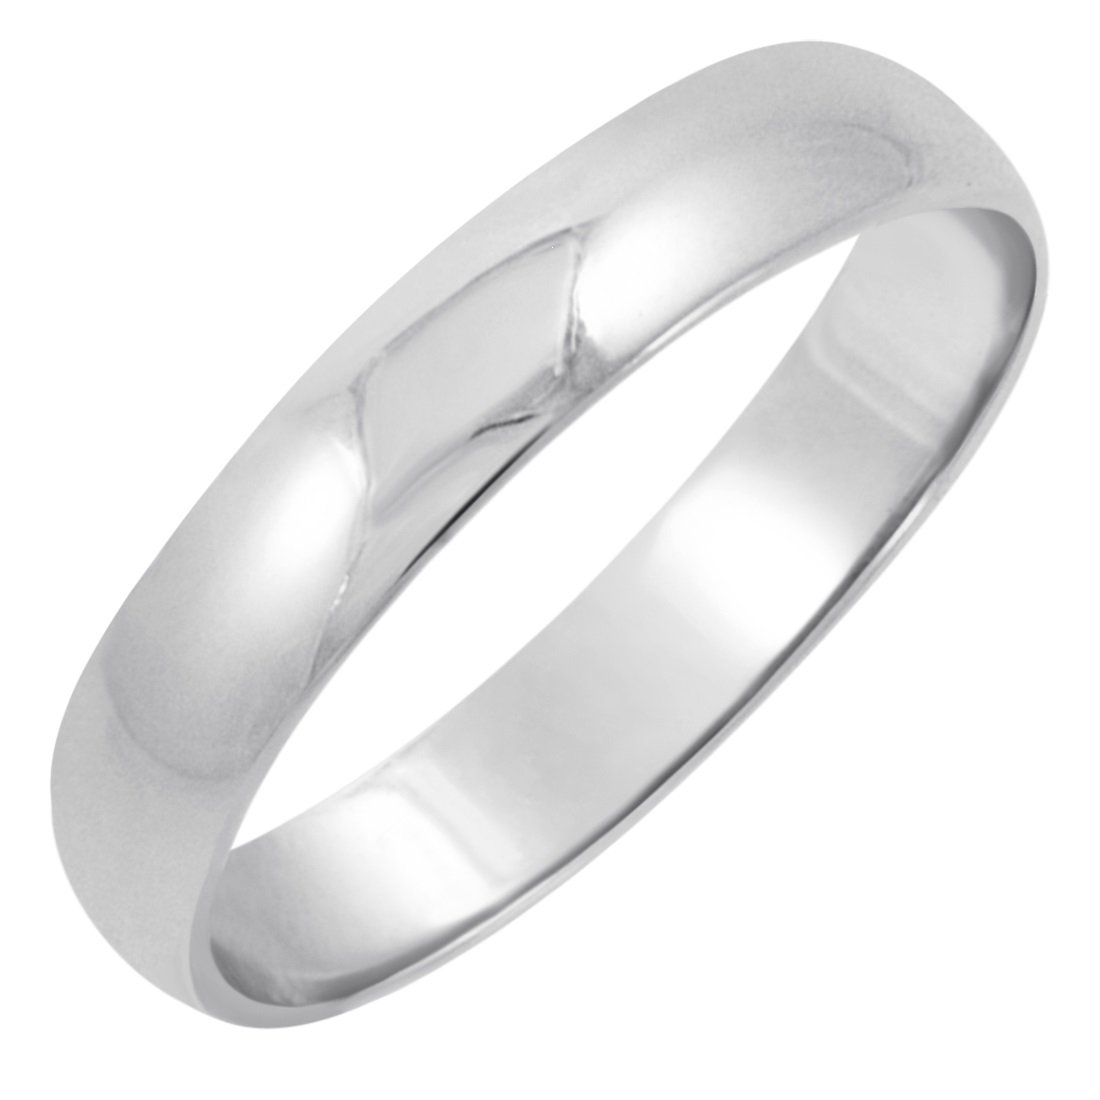 Men's 14K White Gold 4mm Classic Fit Plain Wedding Band (Available Ring Sizes 7-12 1/2) Size 12